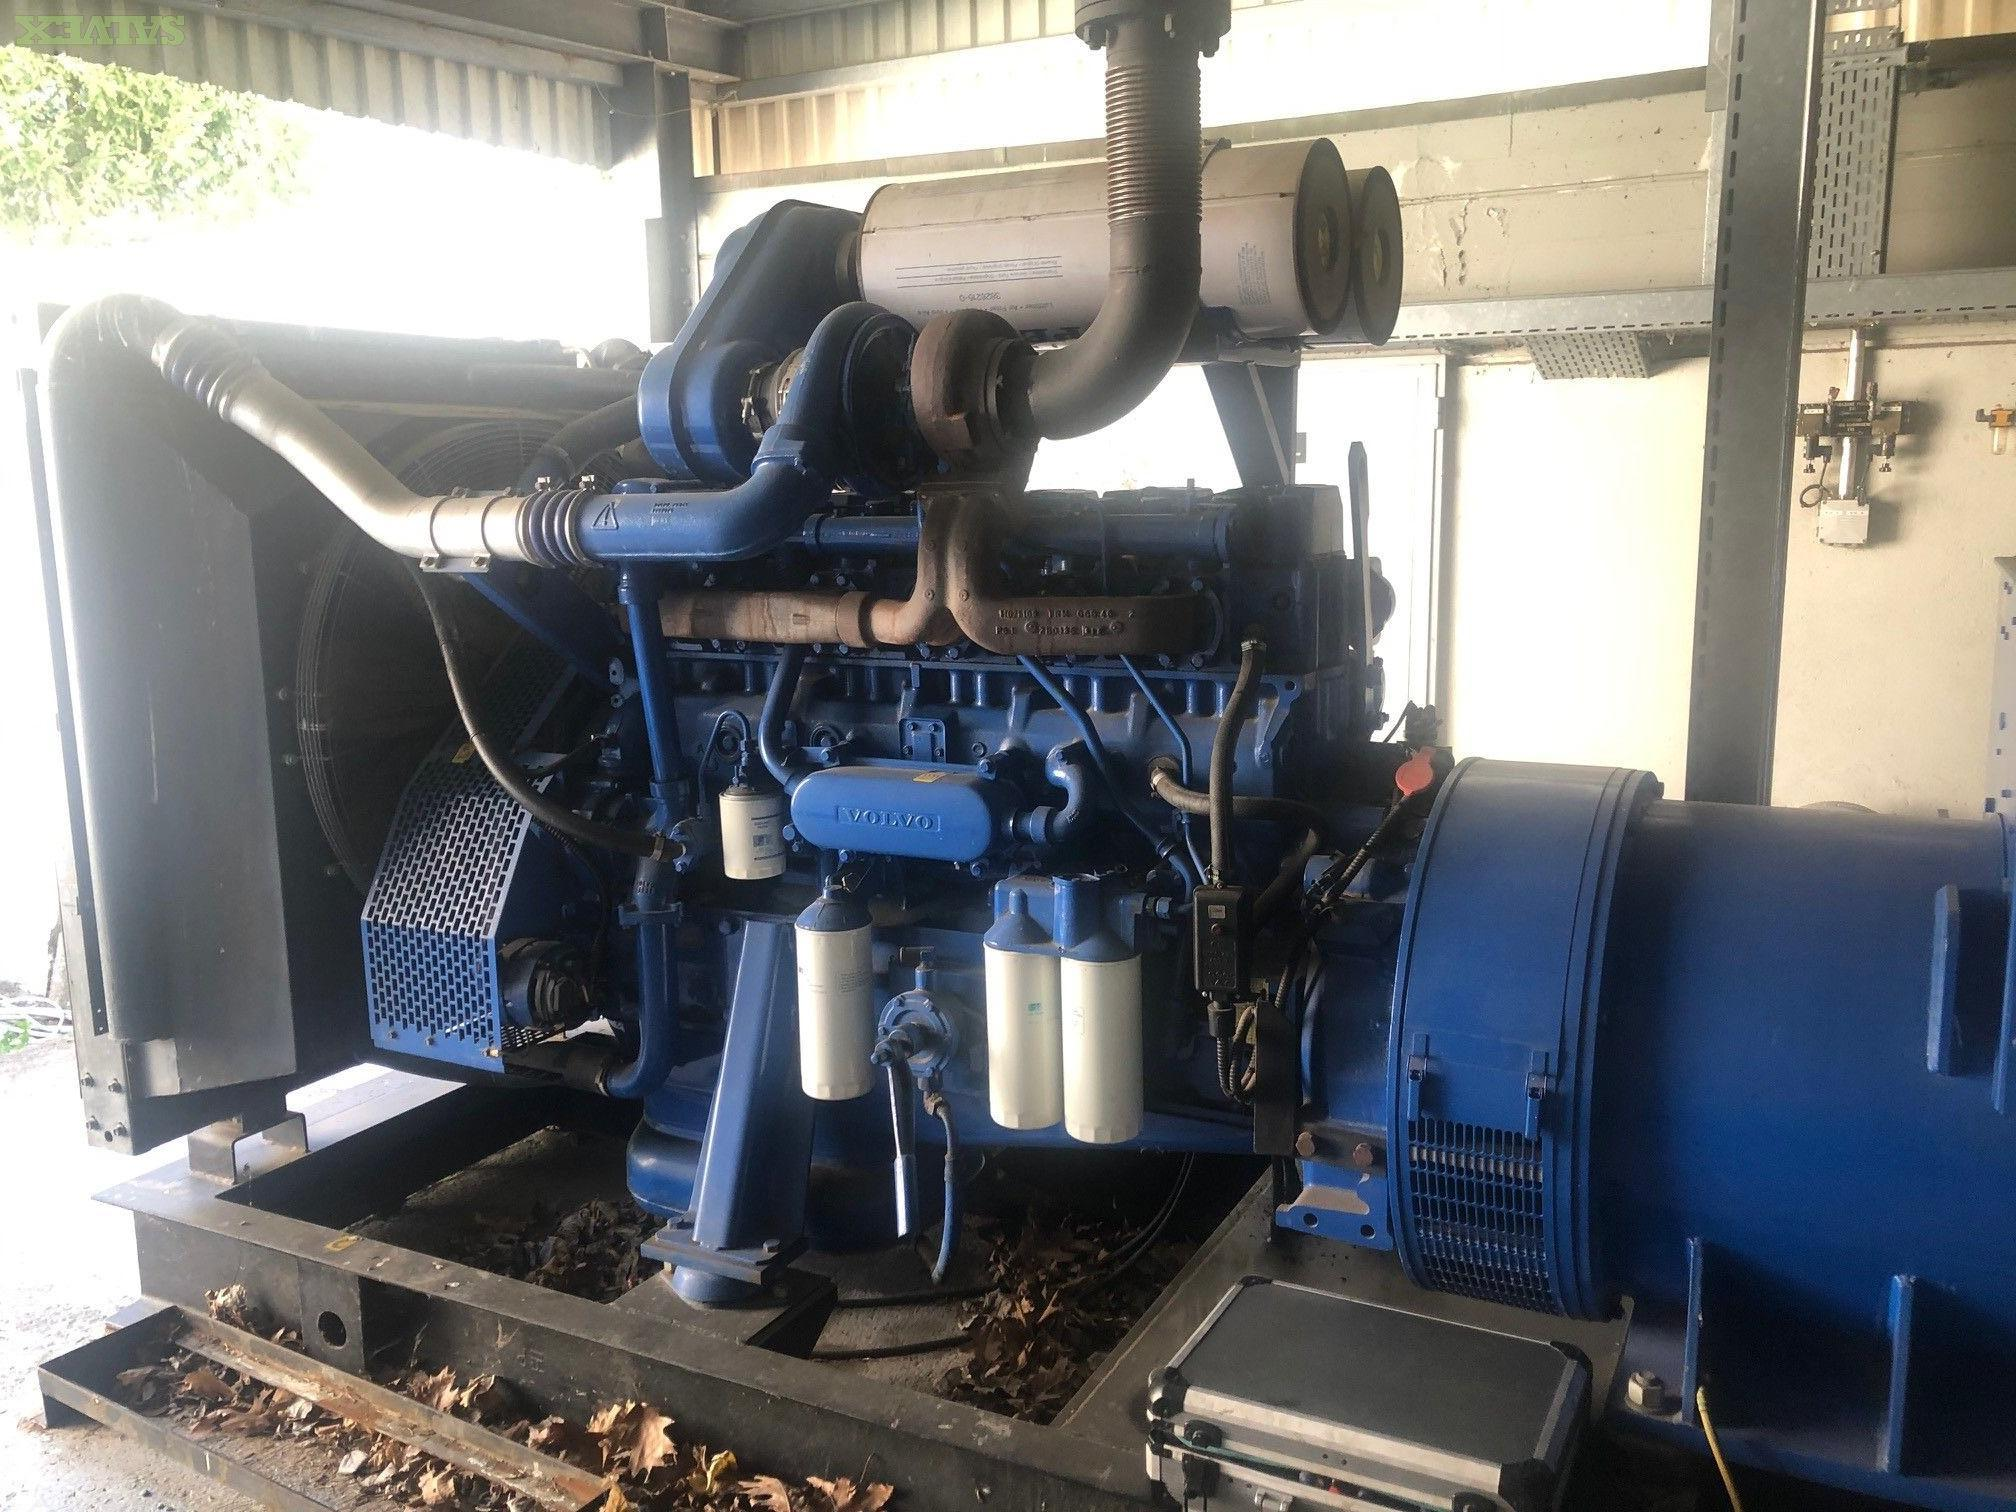 Volvo Penta Power Electric Generator 500KVA-400KW Complete With Electrical Box (1 Unit)